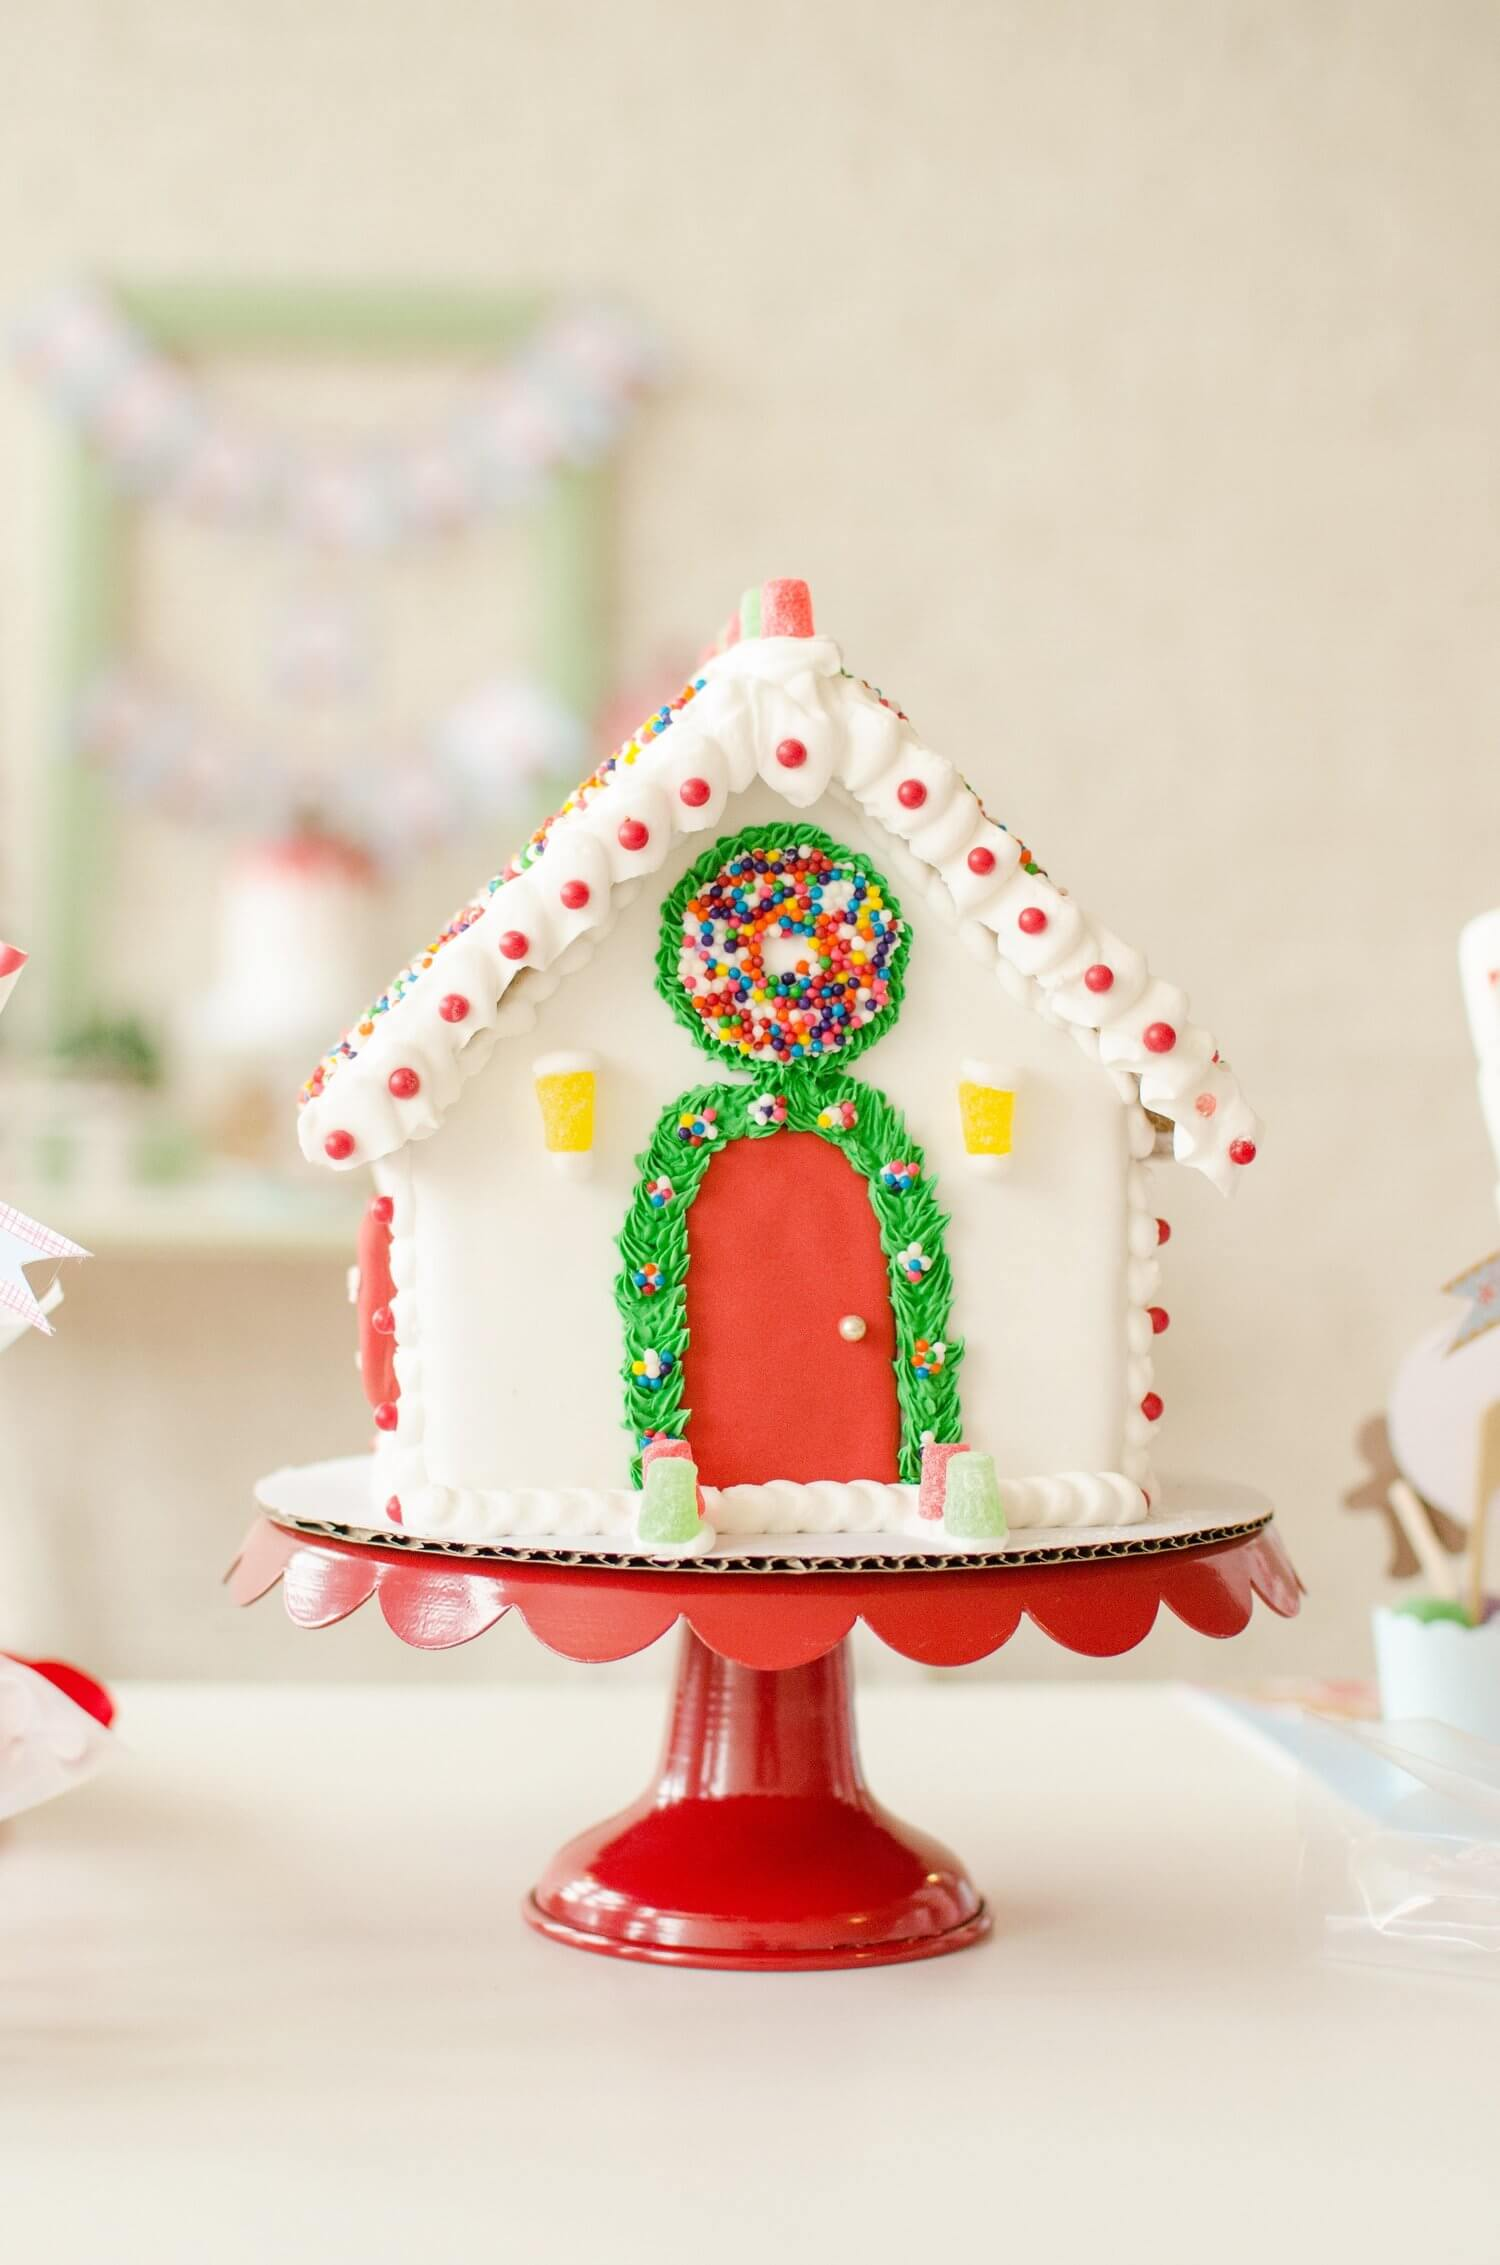 A pretty frosted Gingerbread house on a red pedestal cake stand creates the perfect holiday centerpiece for Christmas parties. See more from this Cookies for Santa party on www.minteventdesign.com - styled by Austin, Texas based party planner Mint Event Design. #holidayparty #holidaypartyideas #christmaspartyideas #gingerbreadhouse #gingerbreadhouseideas